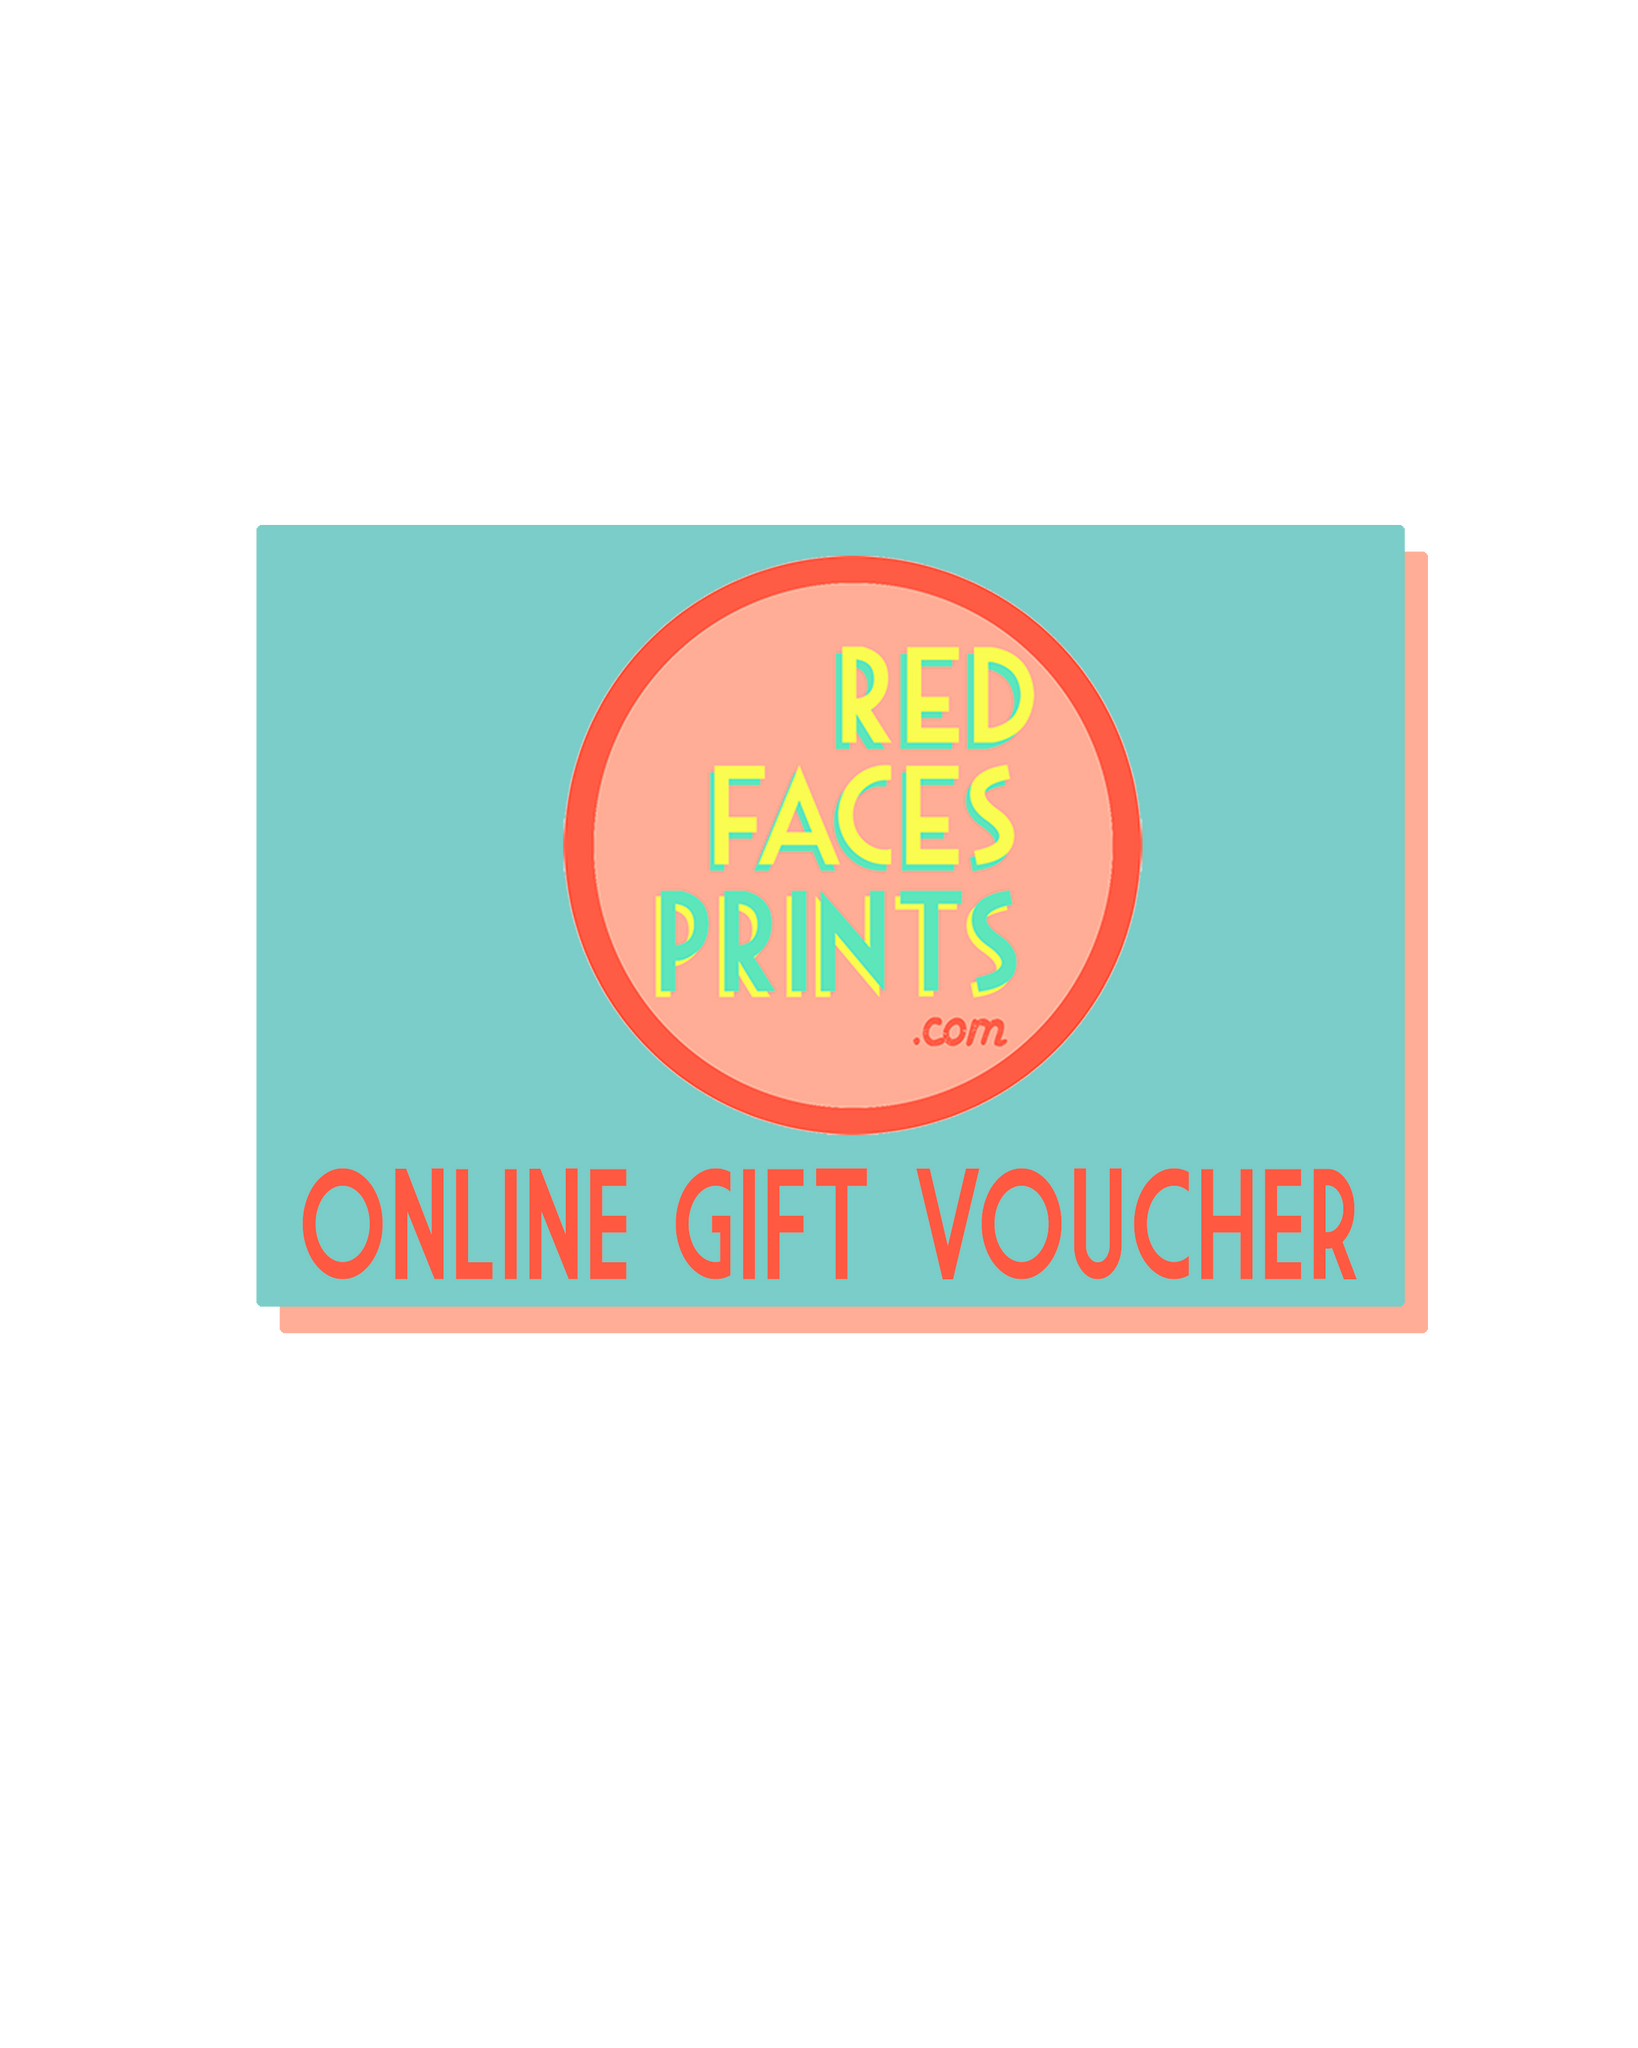 Red Faces Prints Voucher - Red Faces Prints